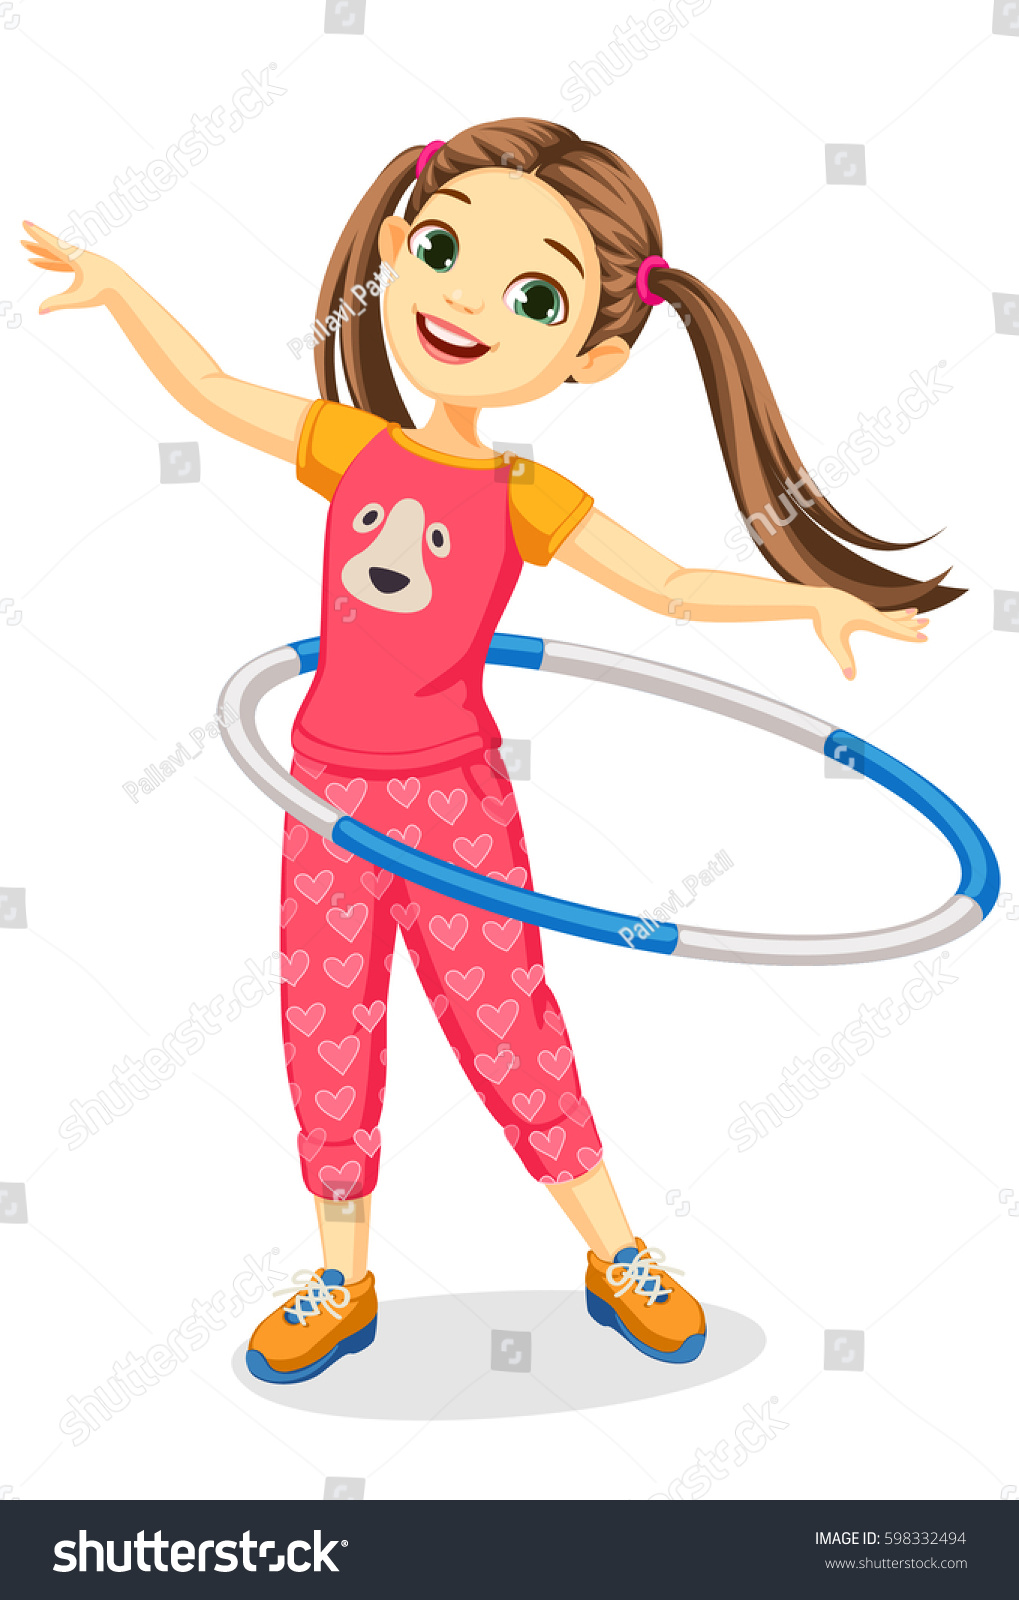 hight resolution of cute happy girl with hula hoop